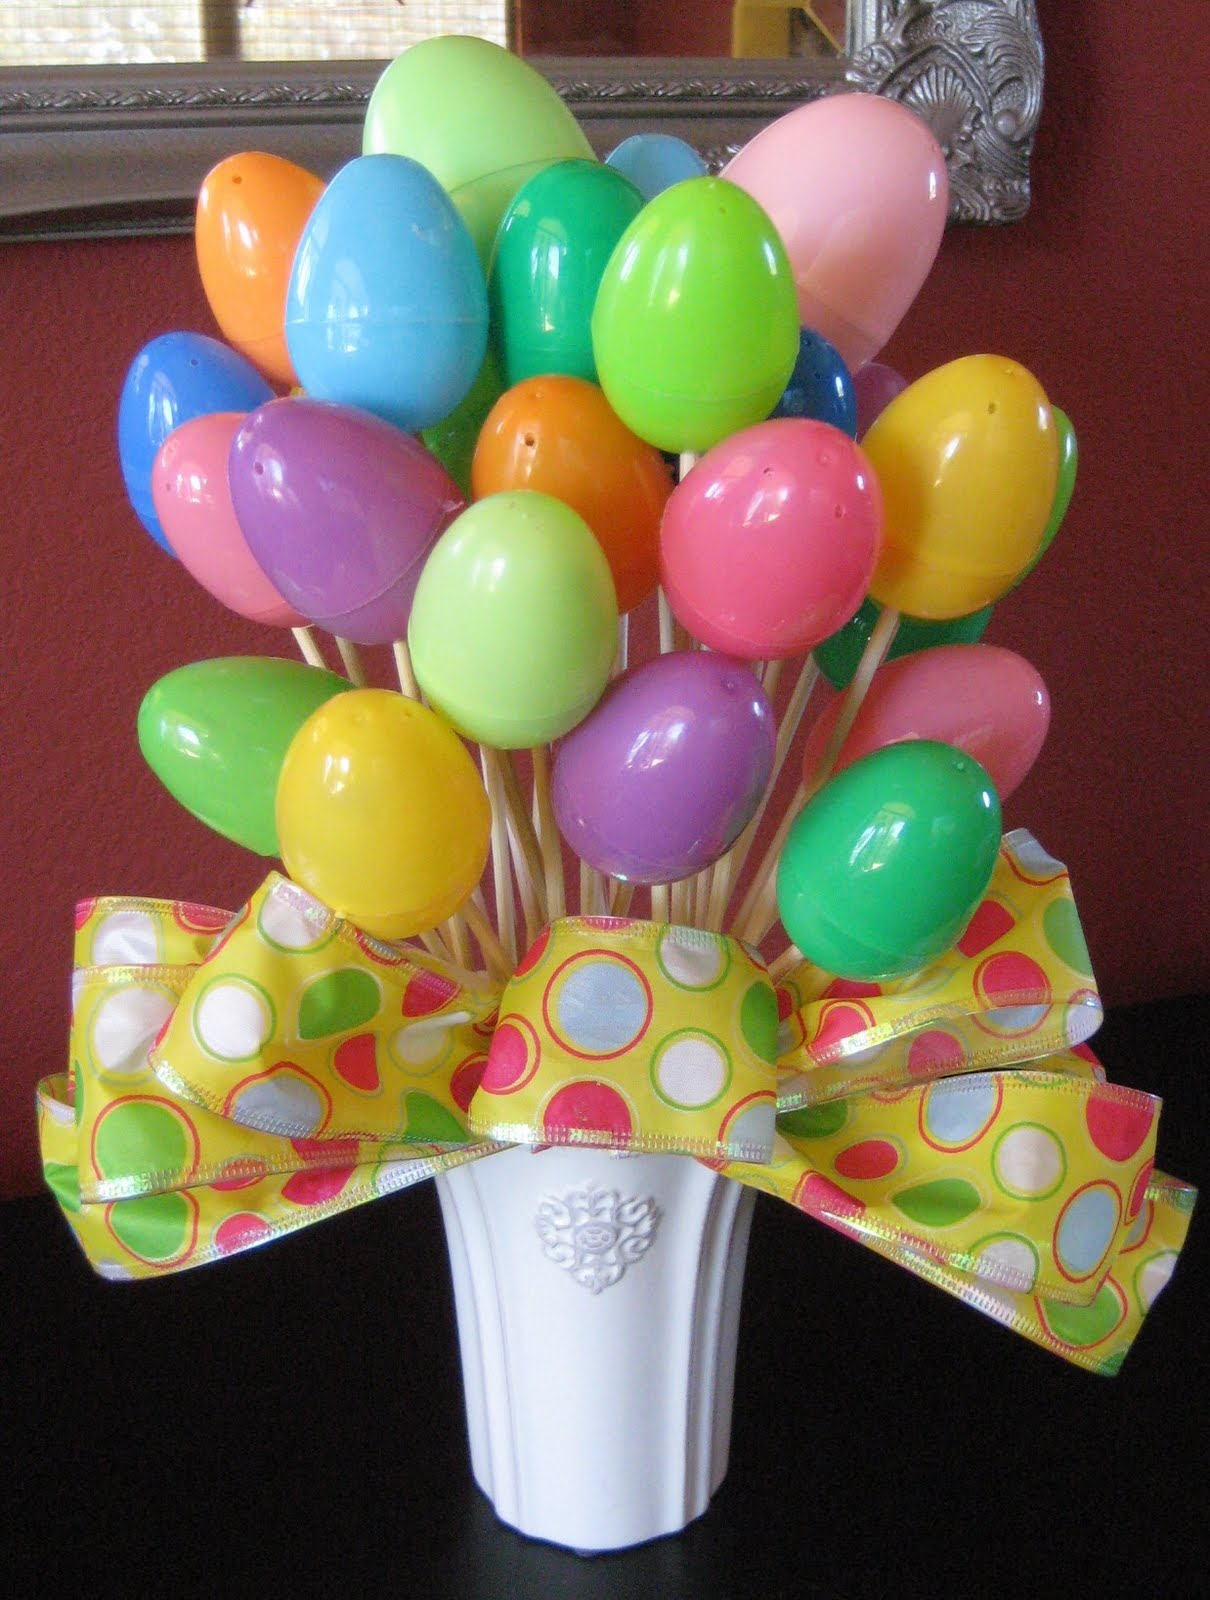 Flower Bouquet of Plastic Easter Eggs